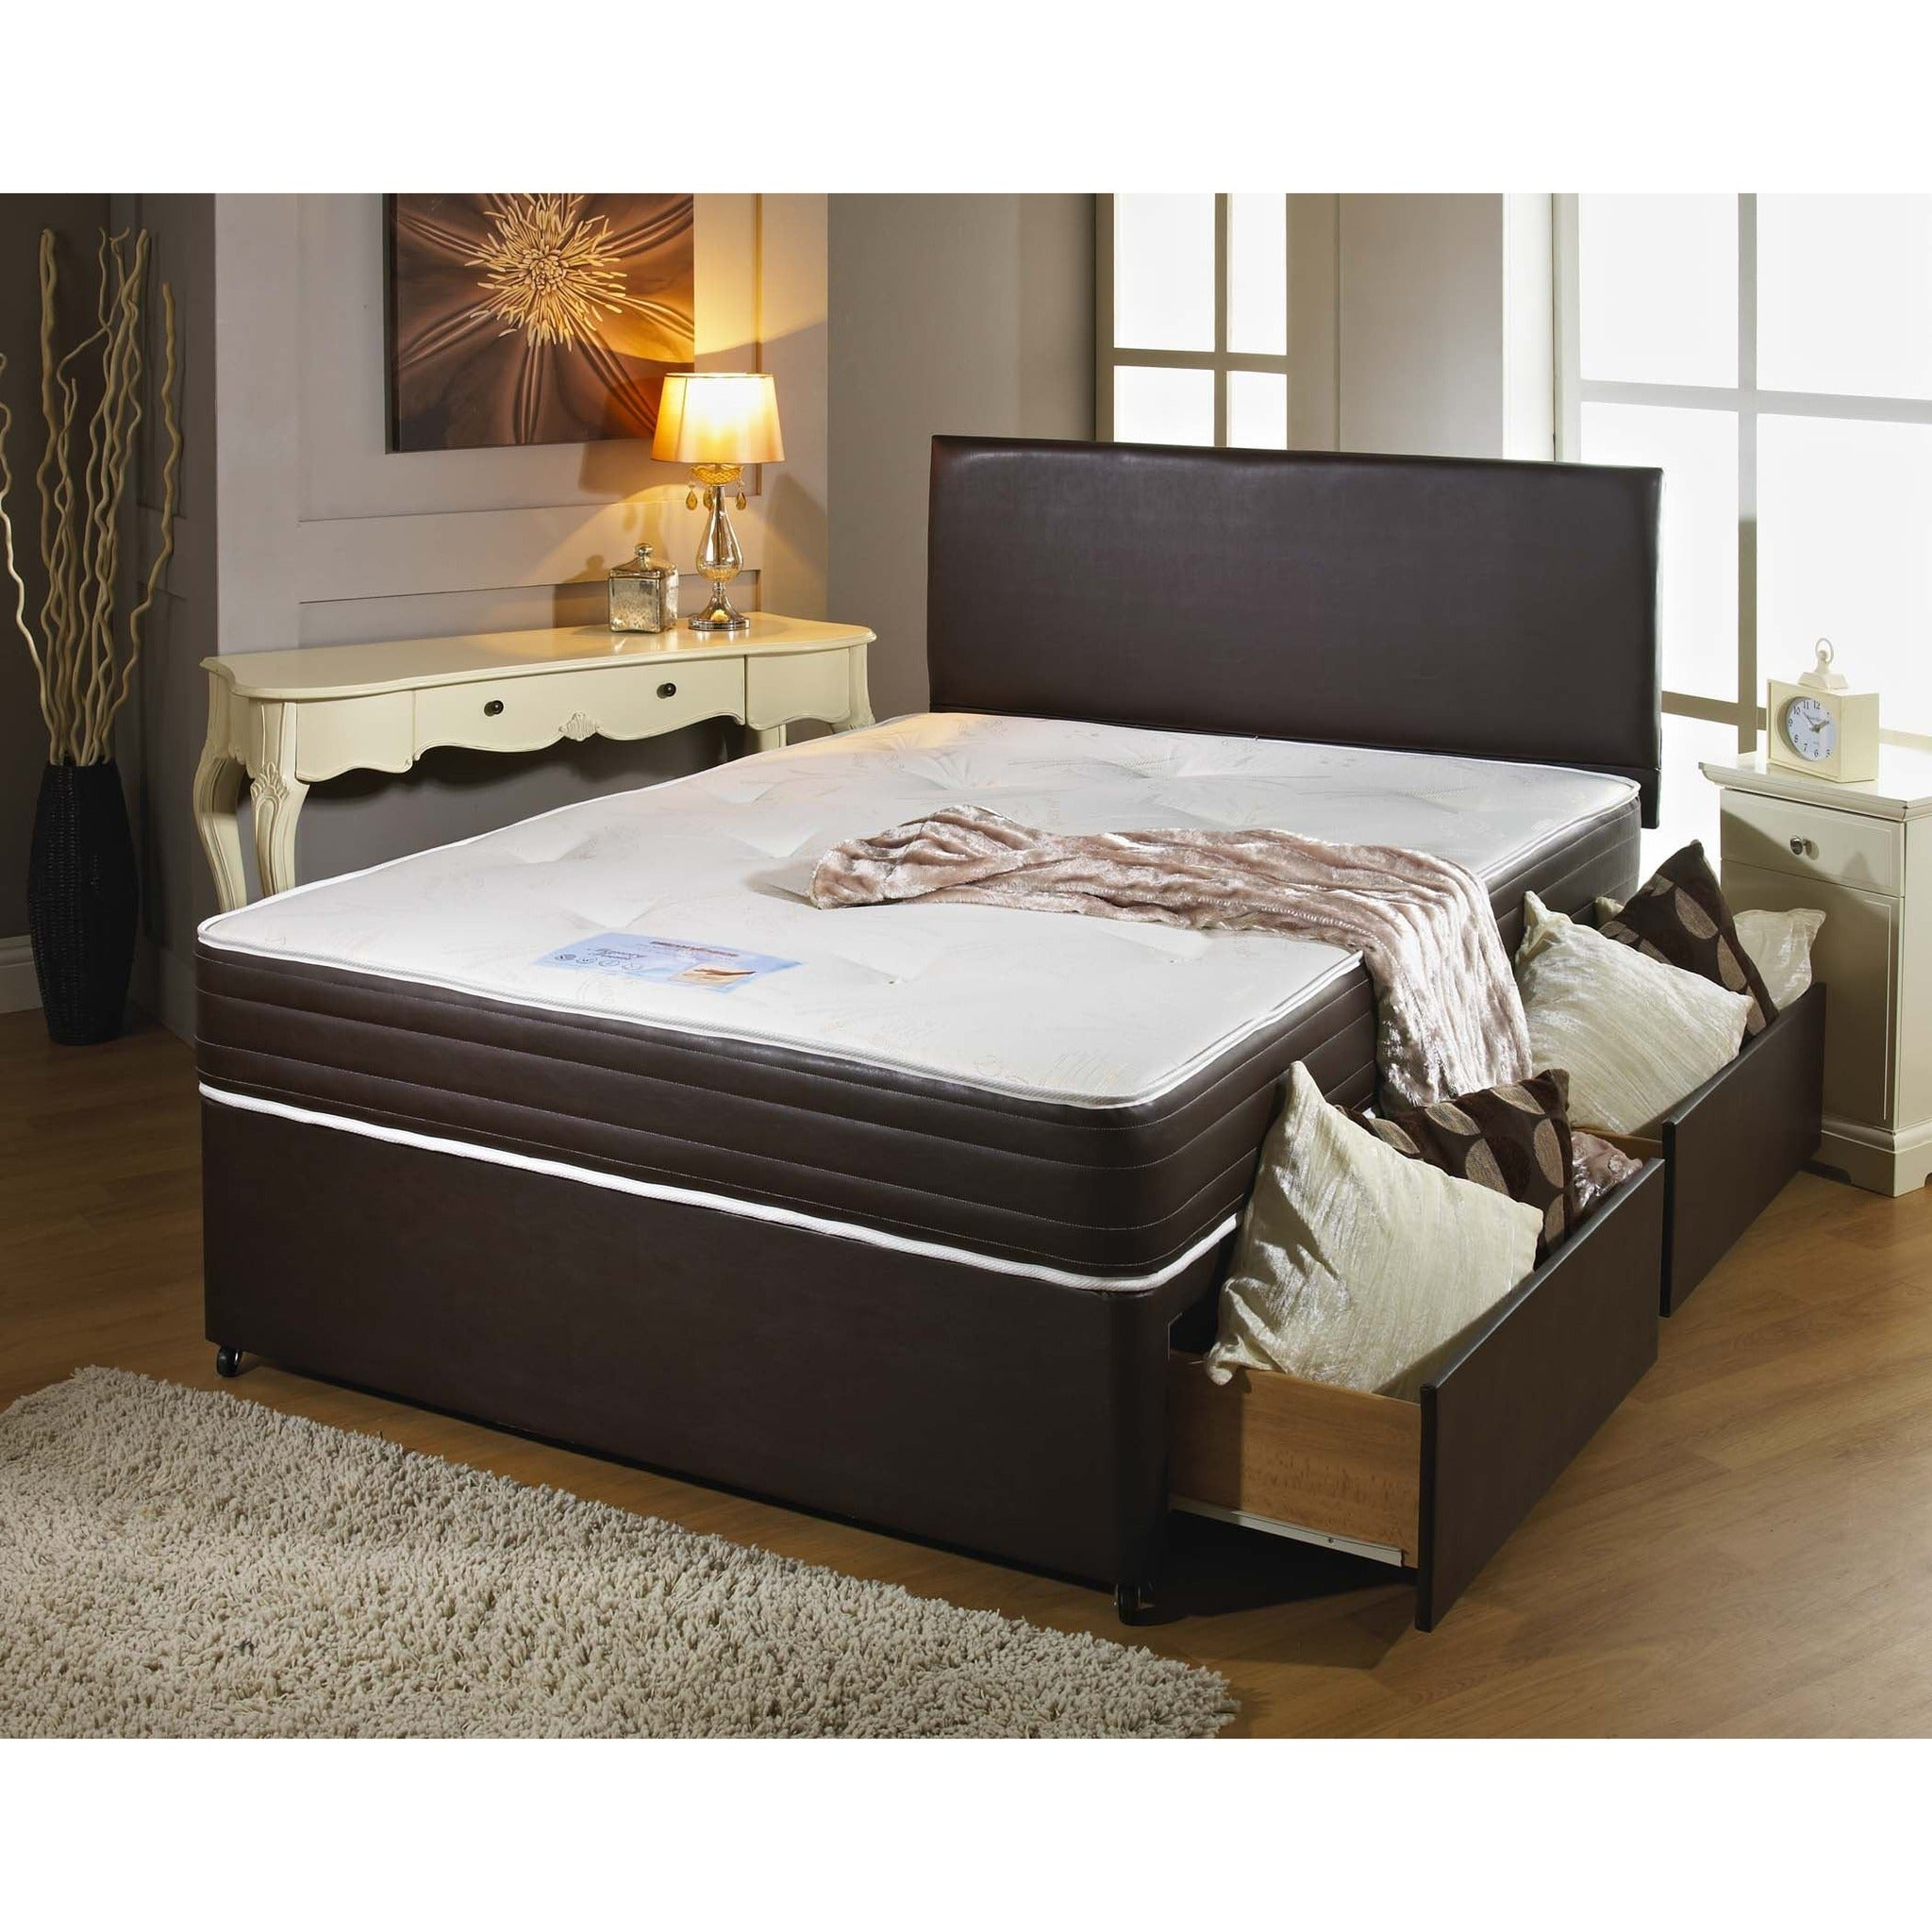 Picture of: Memory Leather King Size Divan Bed Sure Sleep Beds